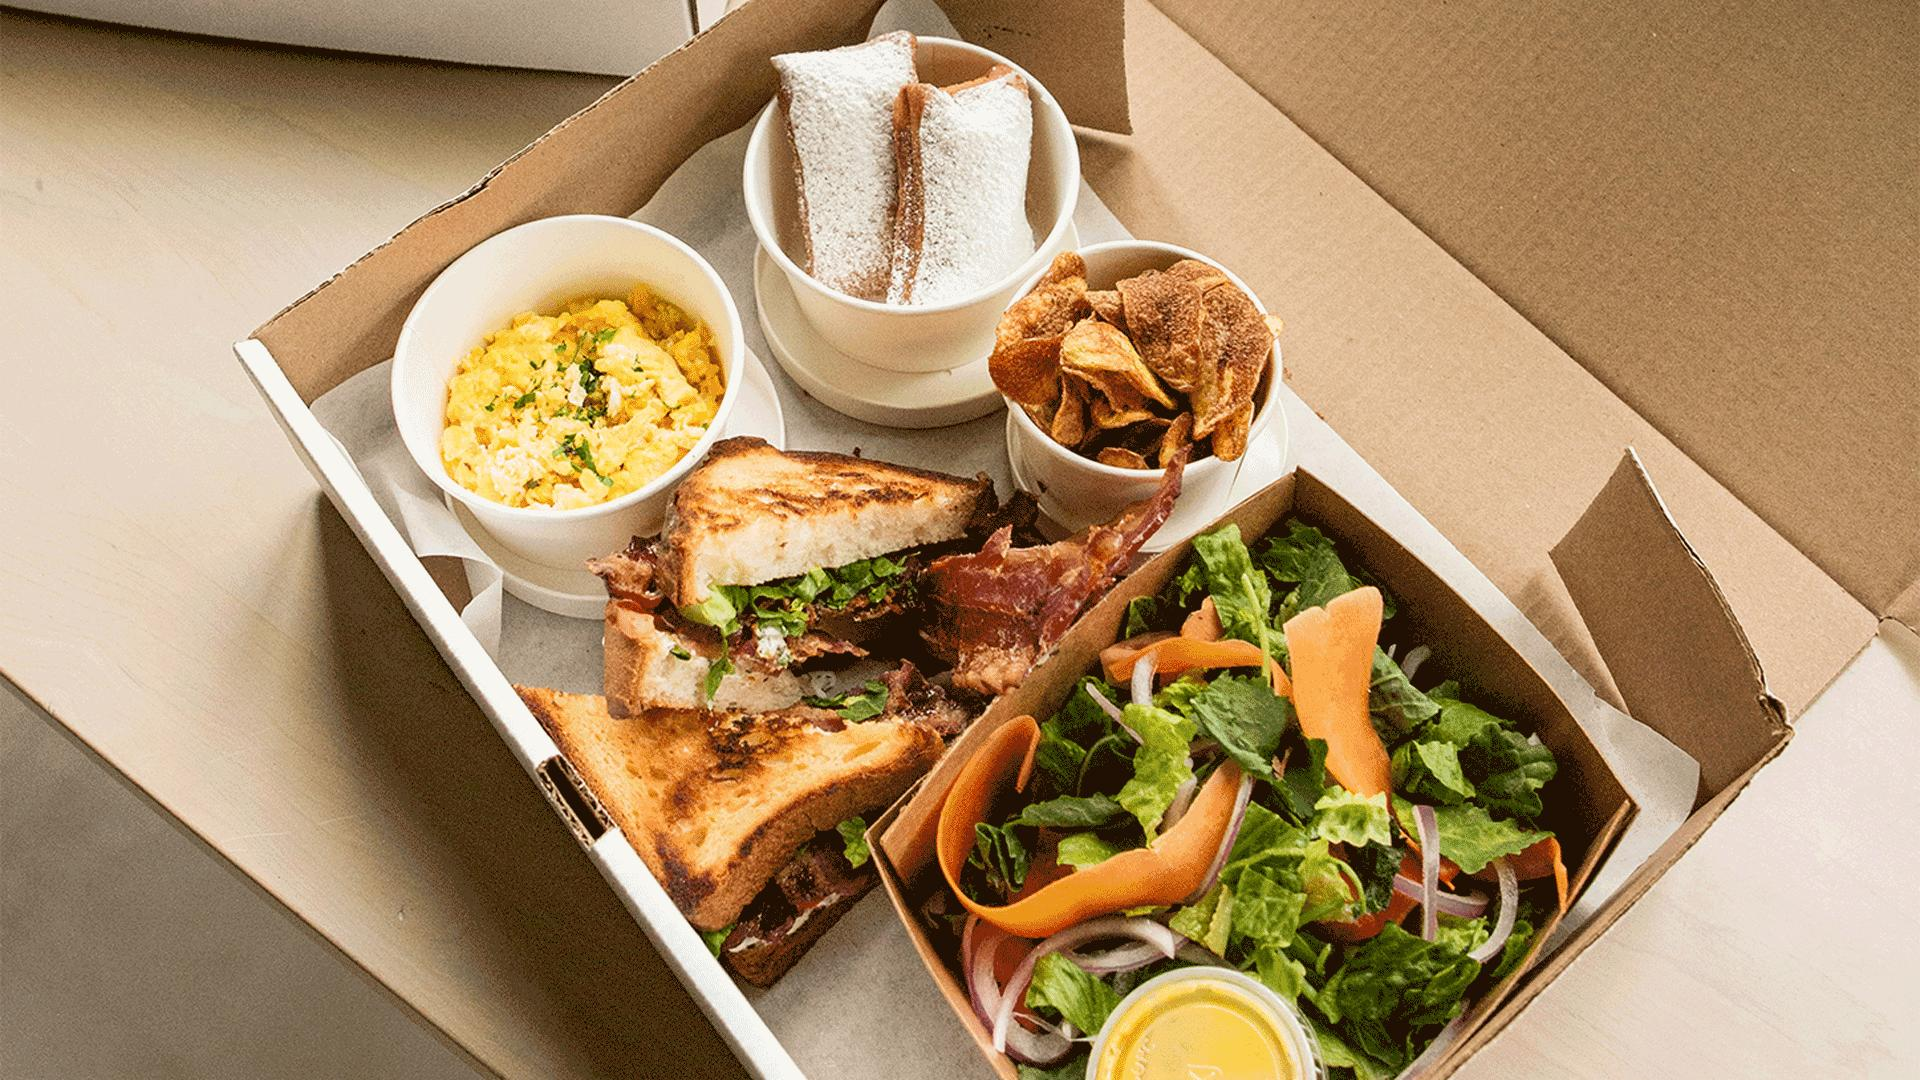 Must-try picnic baskets from Toronto restaurants   Reyna on King's picnic breakfast sandwiches and pastries